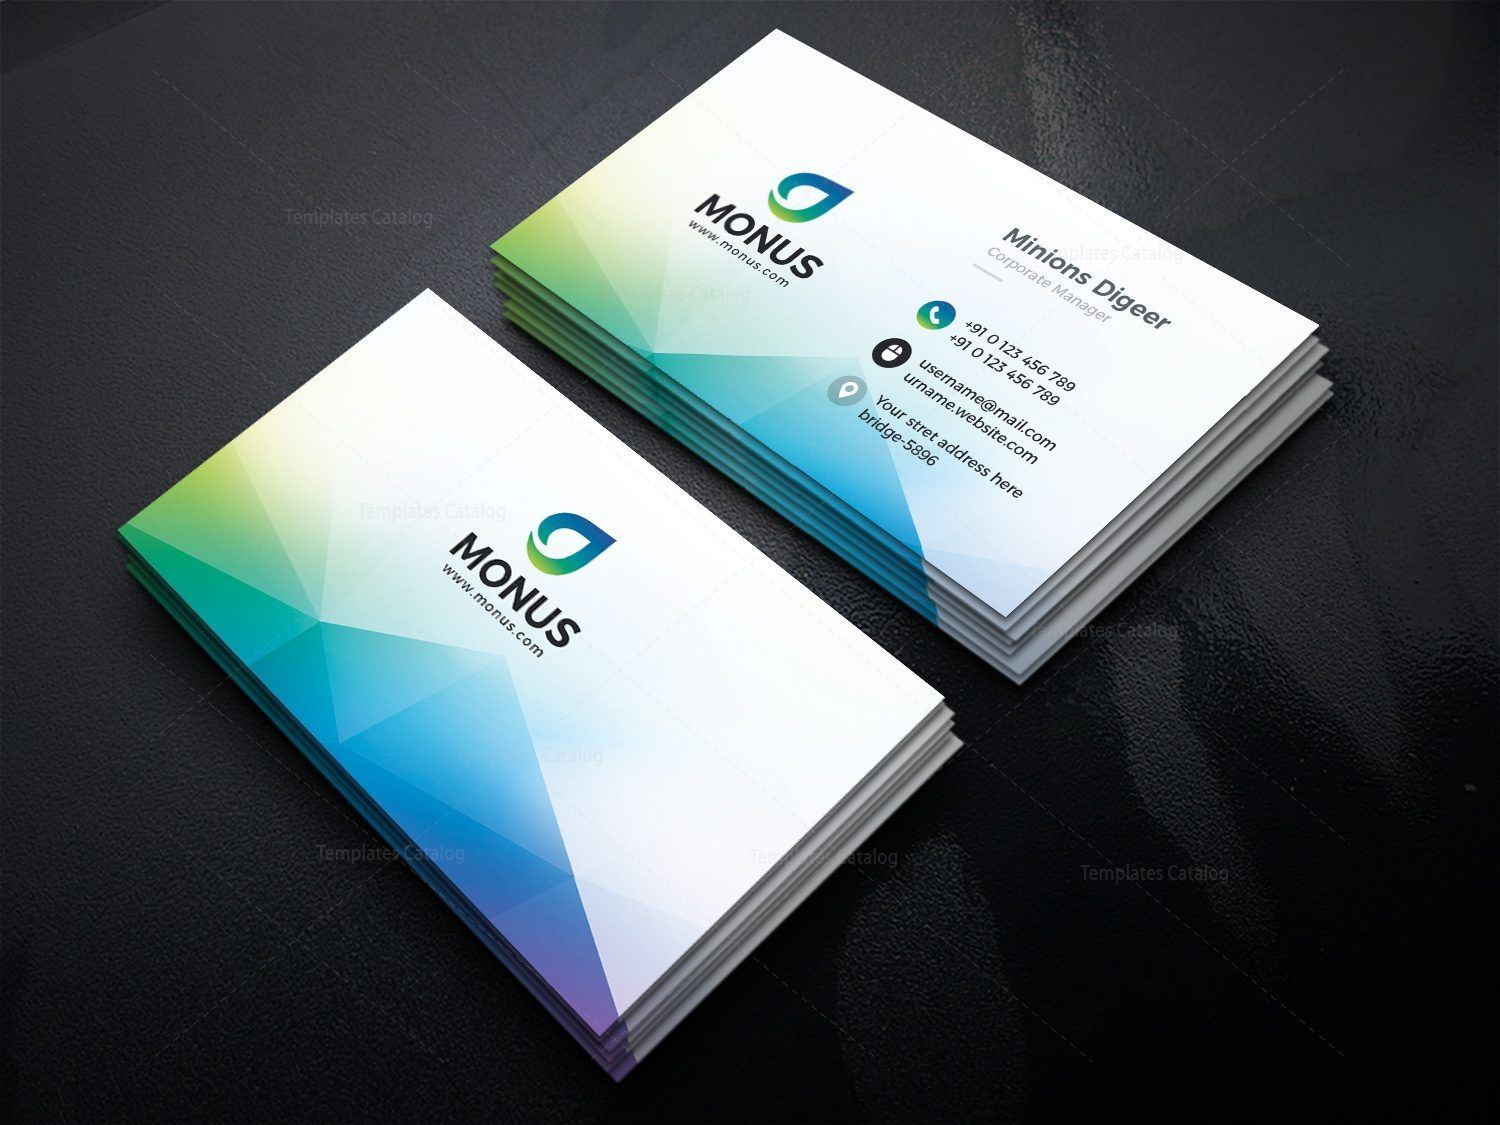 Aurora modern business card design template 001593 gfx pinterest aurora modern business card design template 001593 fbccfo Image collections